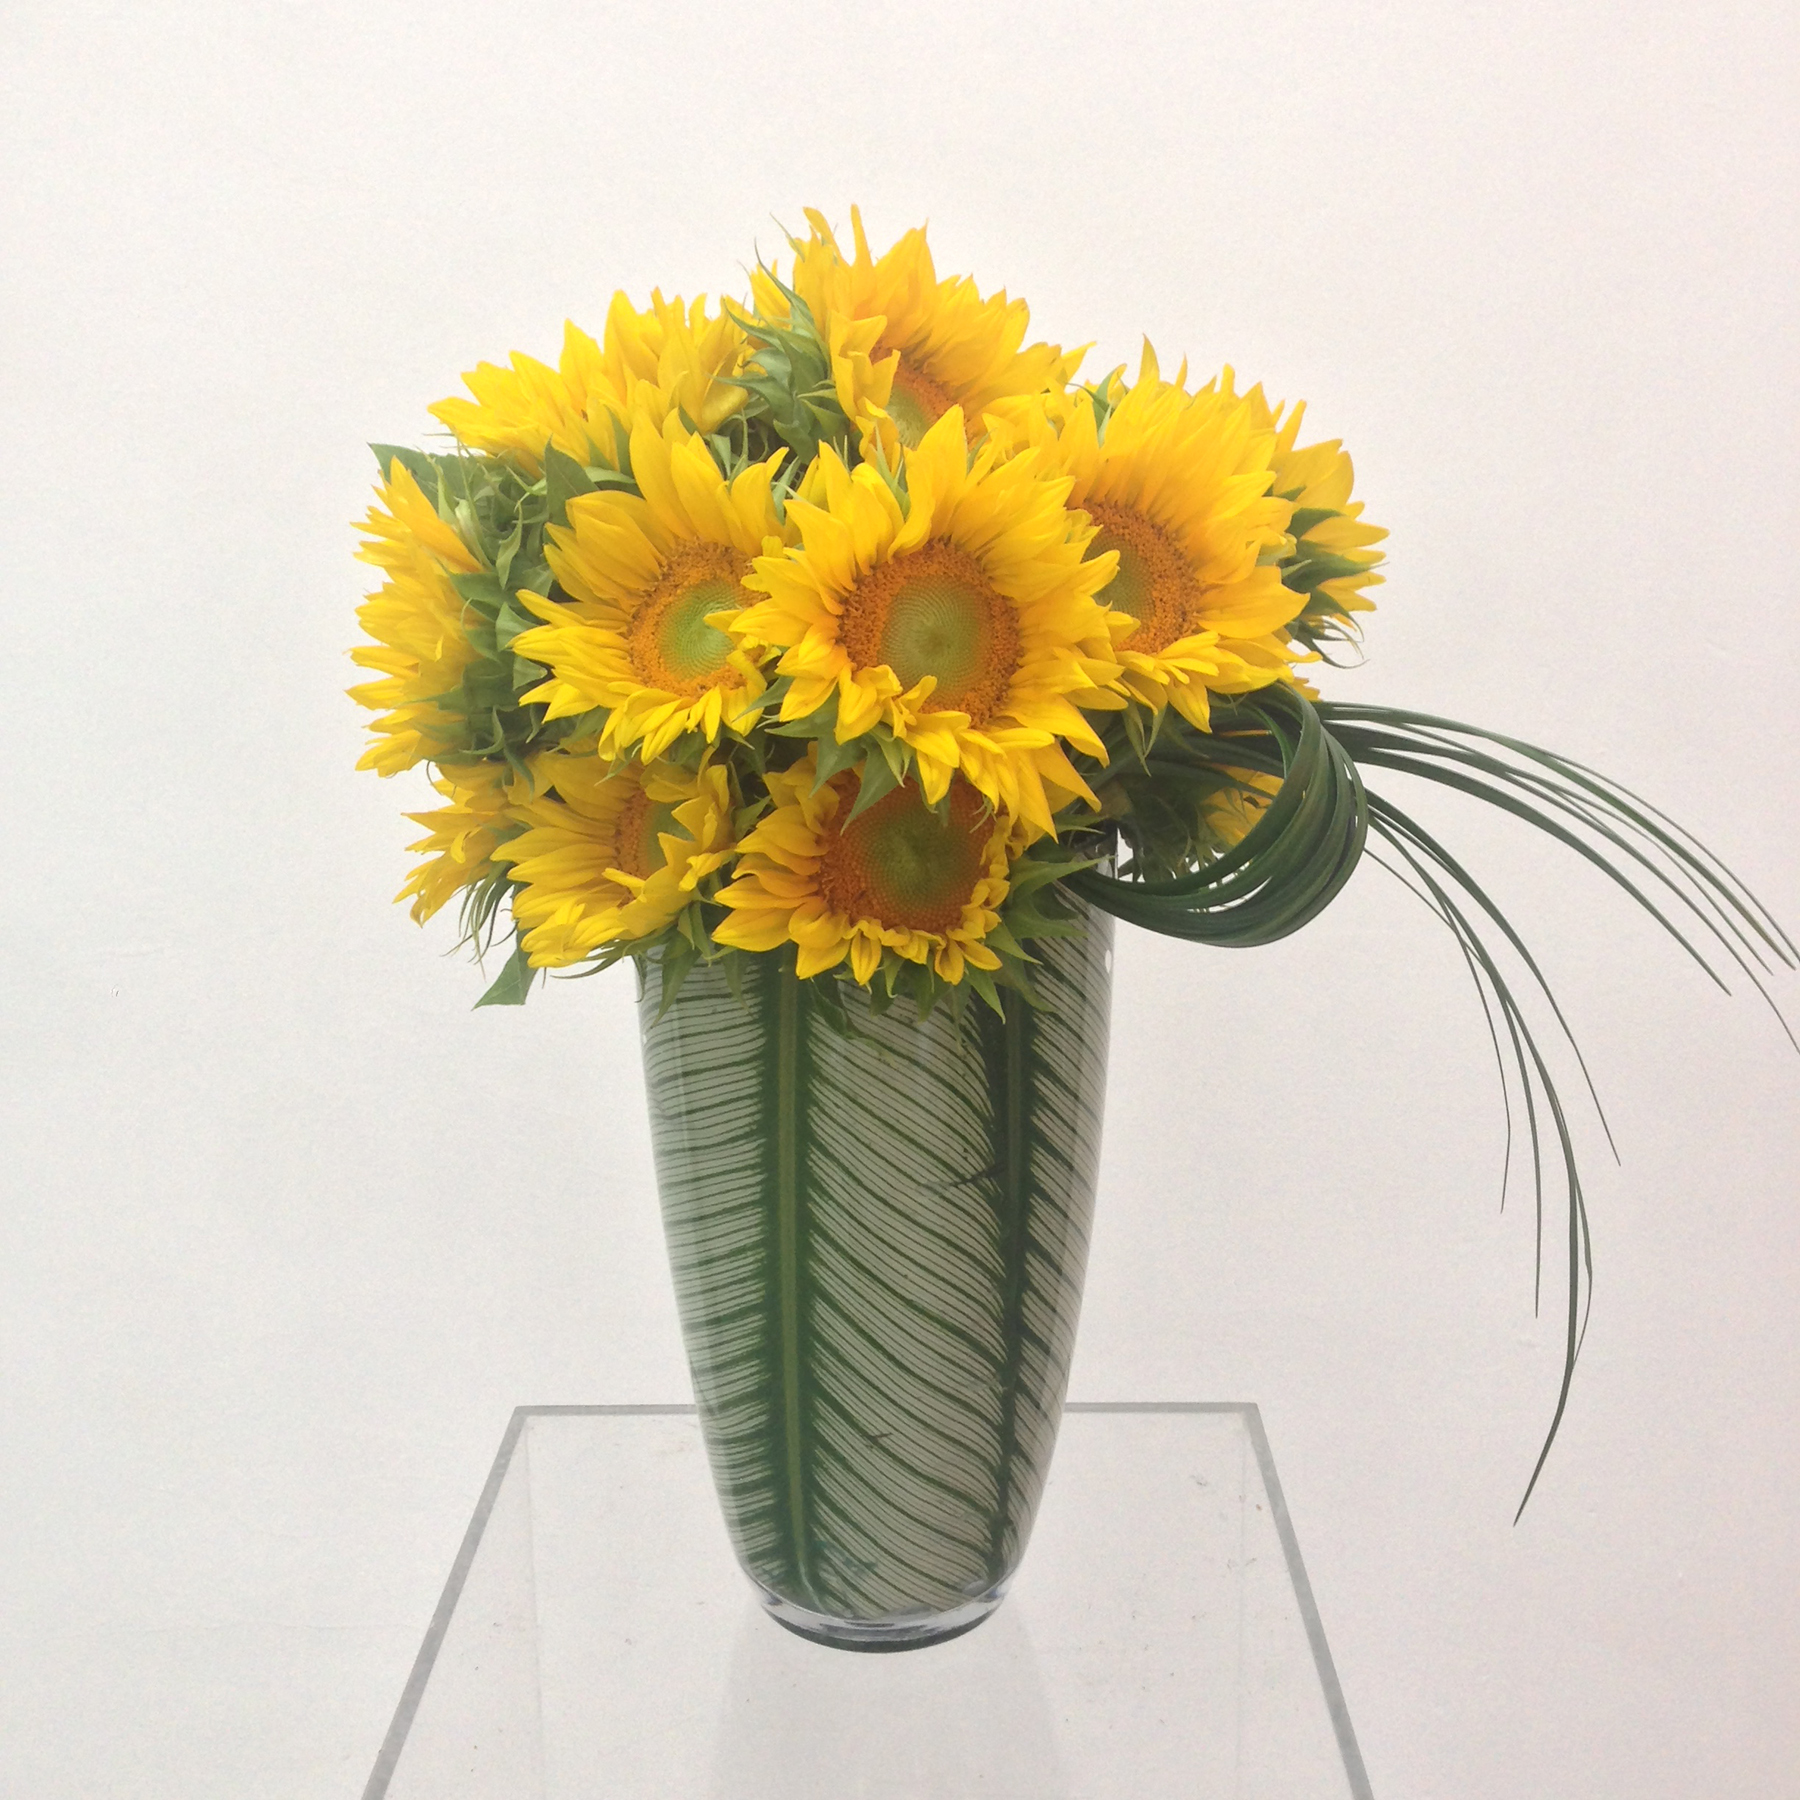 Sunflowers in a lined vase